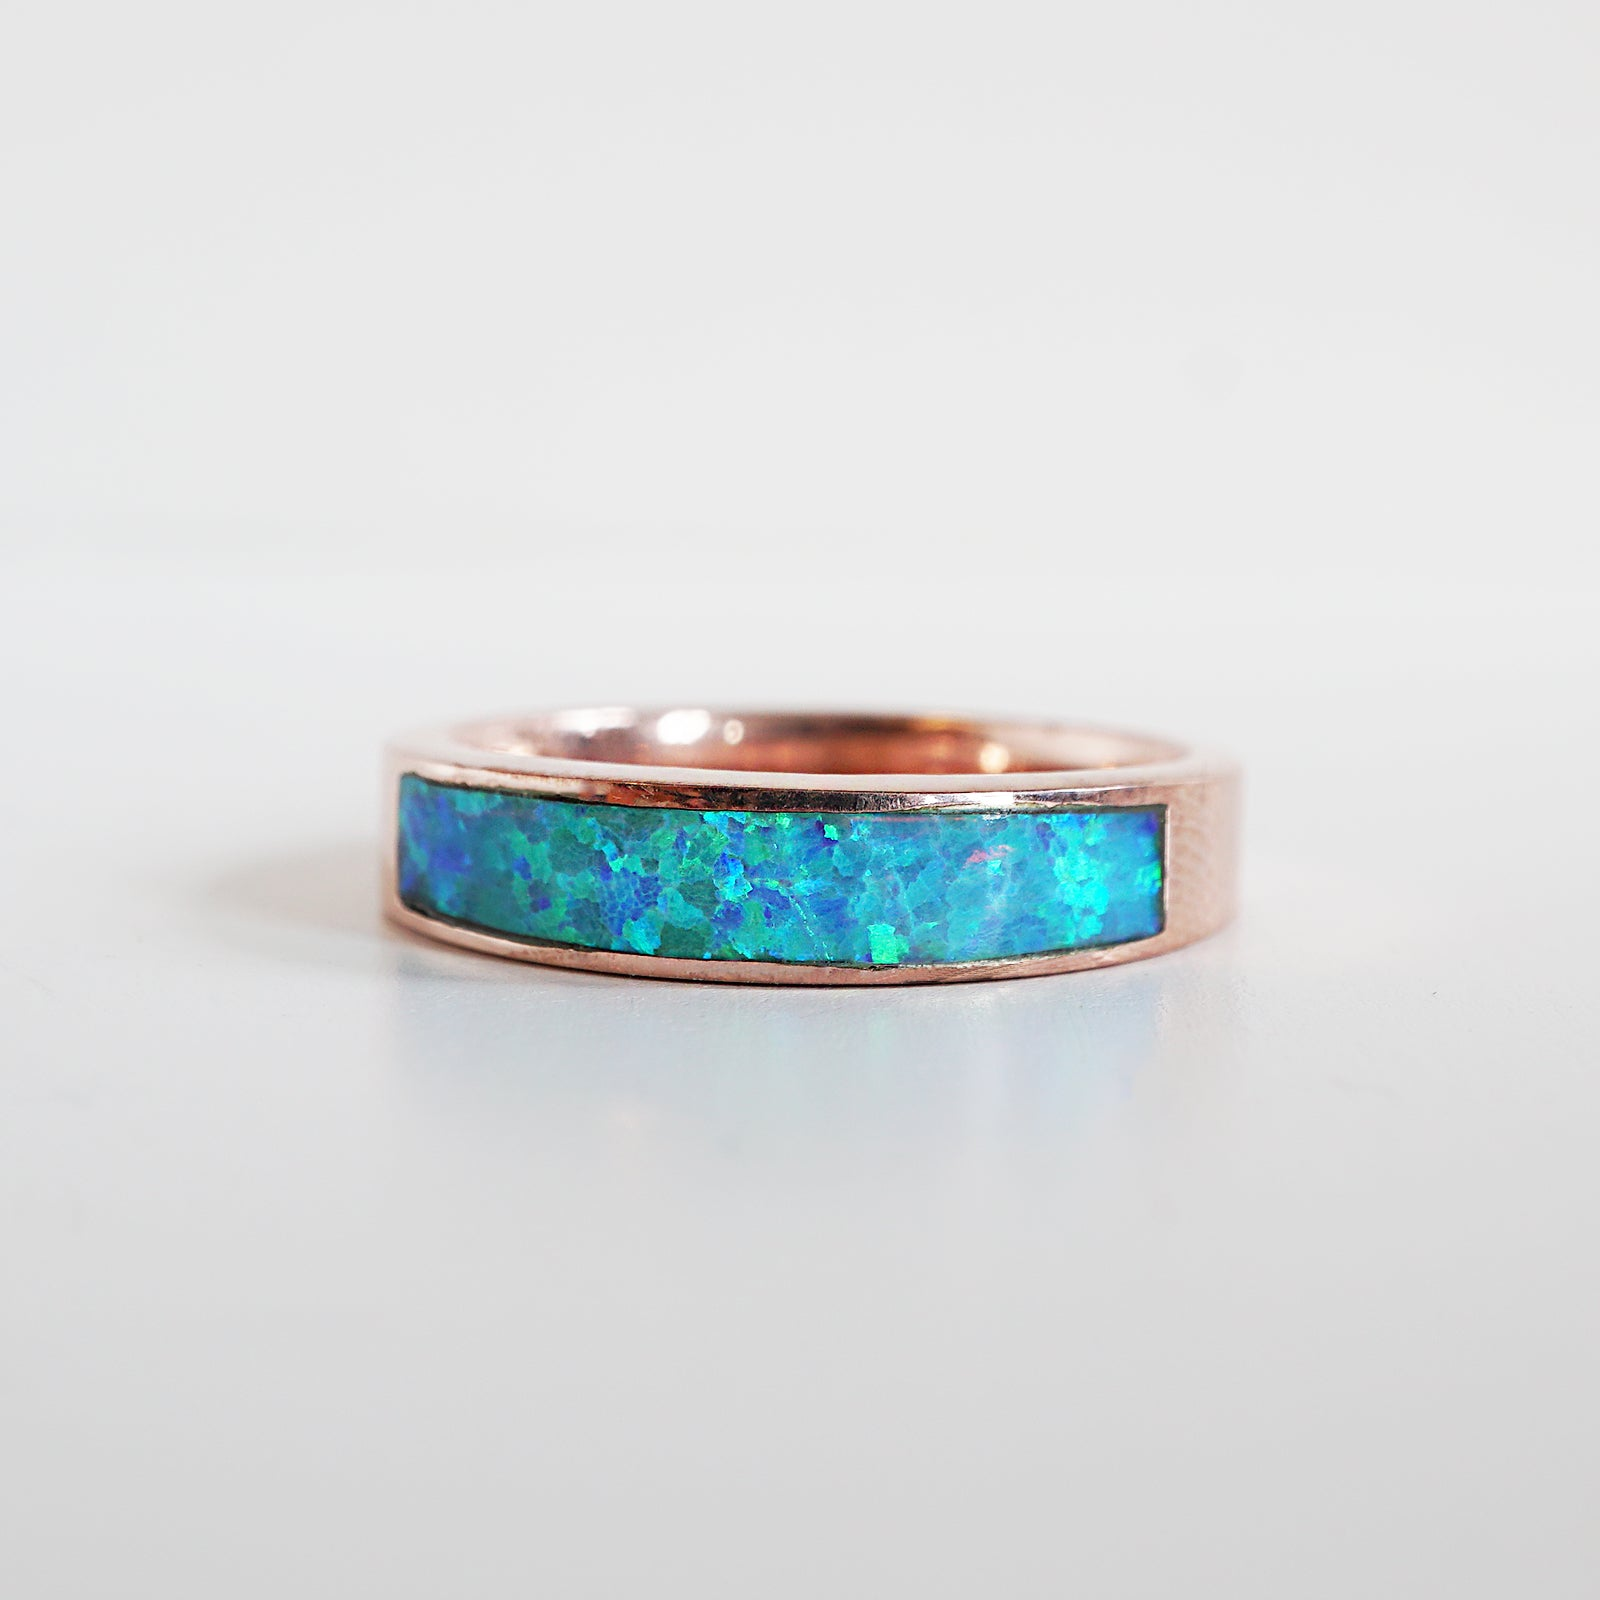 Opal Ring Band, 3.5mm